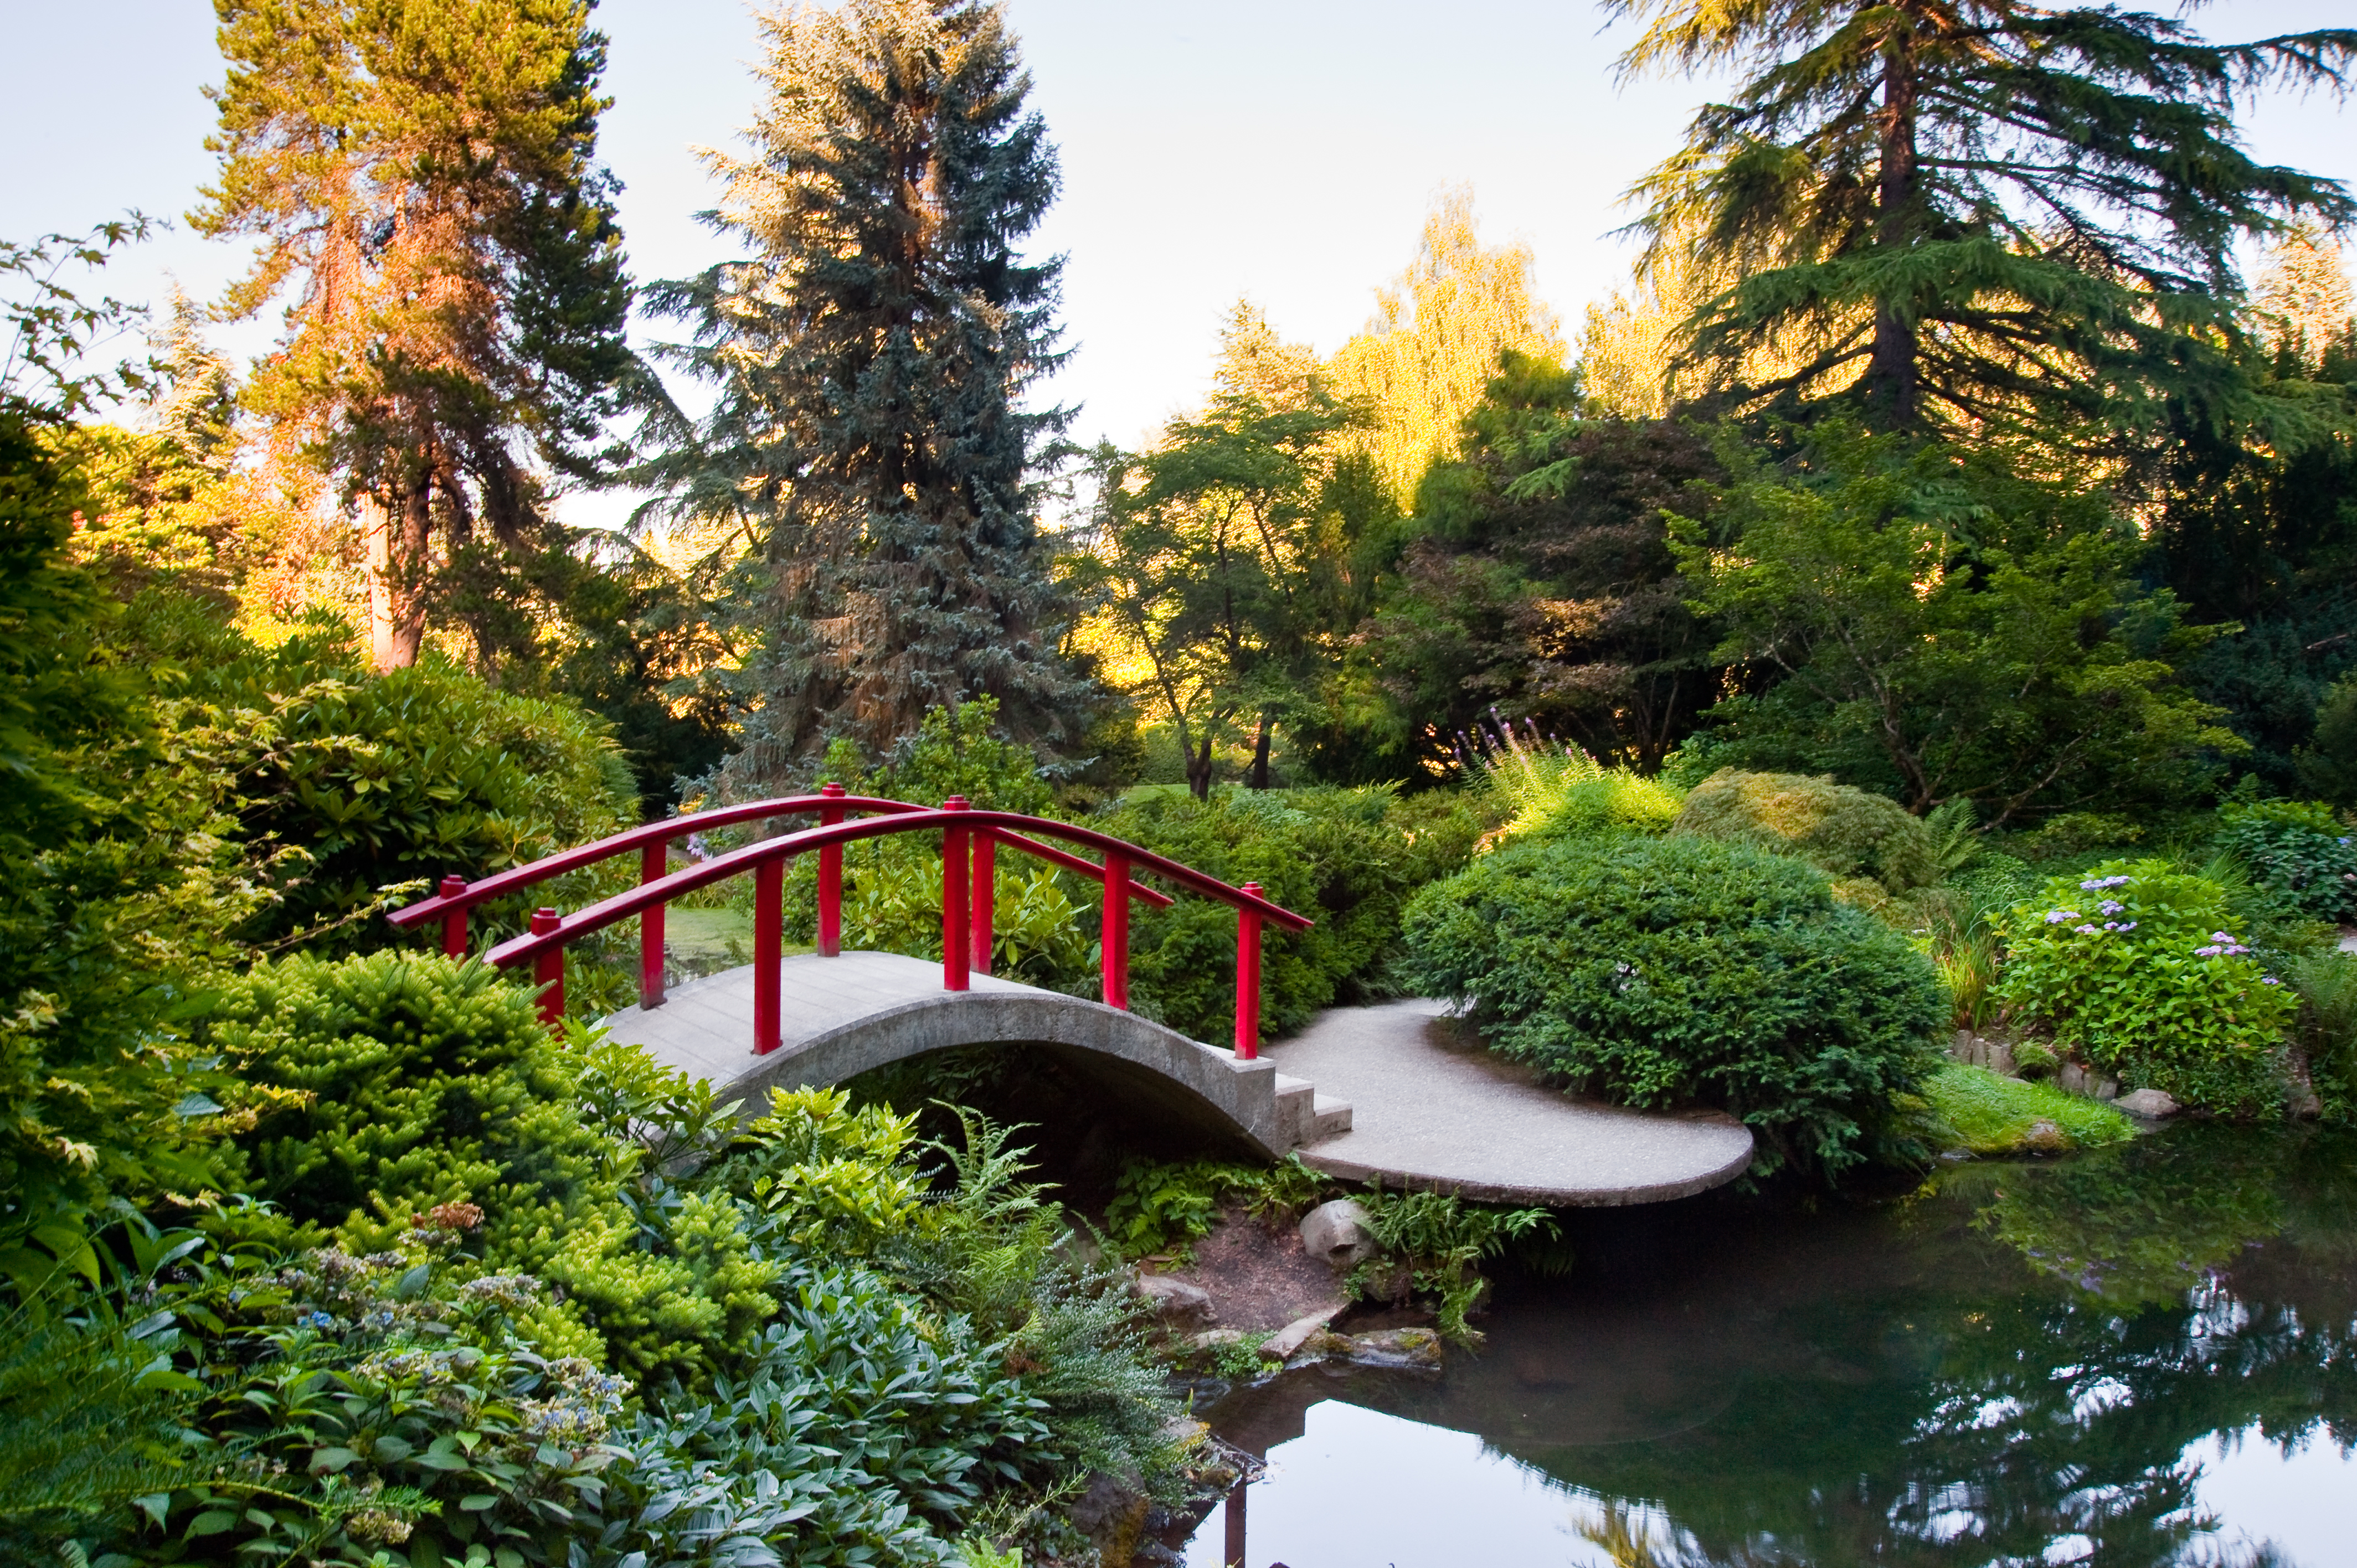 A garden with assorted trees, plants, and shrubbery in Seattle. There is a small bridge over a still body of water. The bridge has red railings and a grey concrete base.